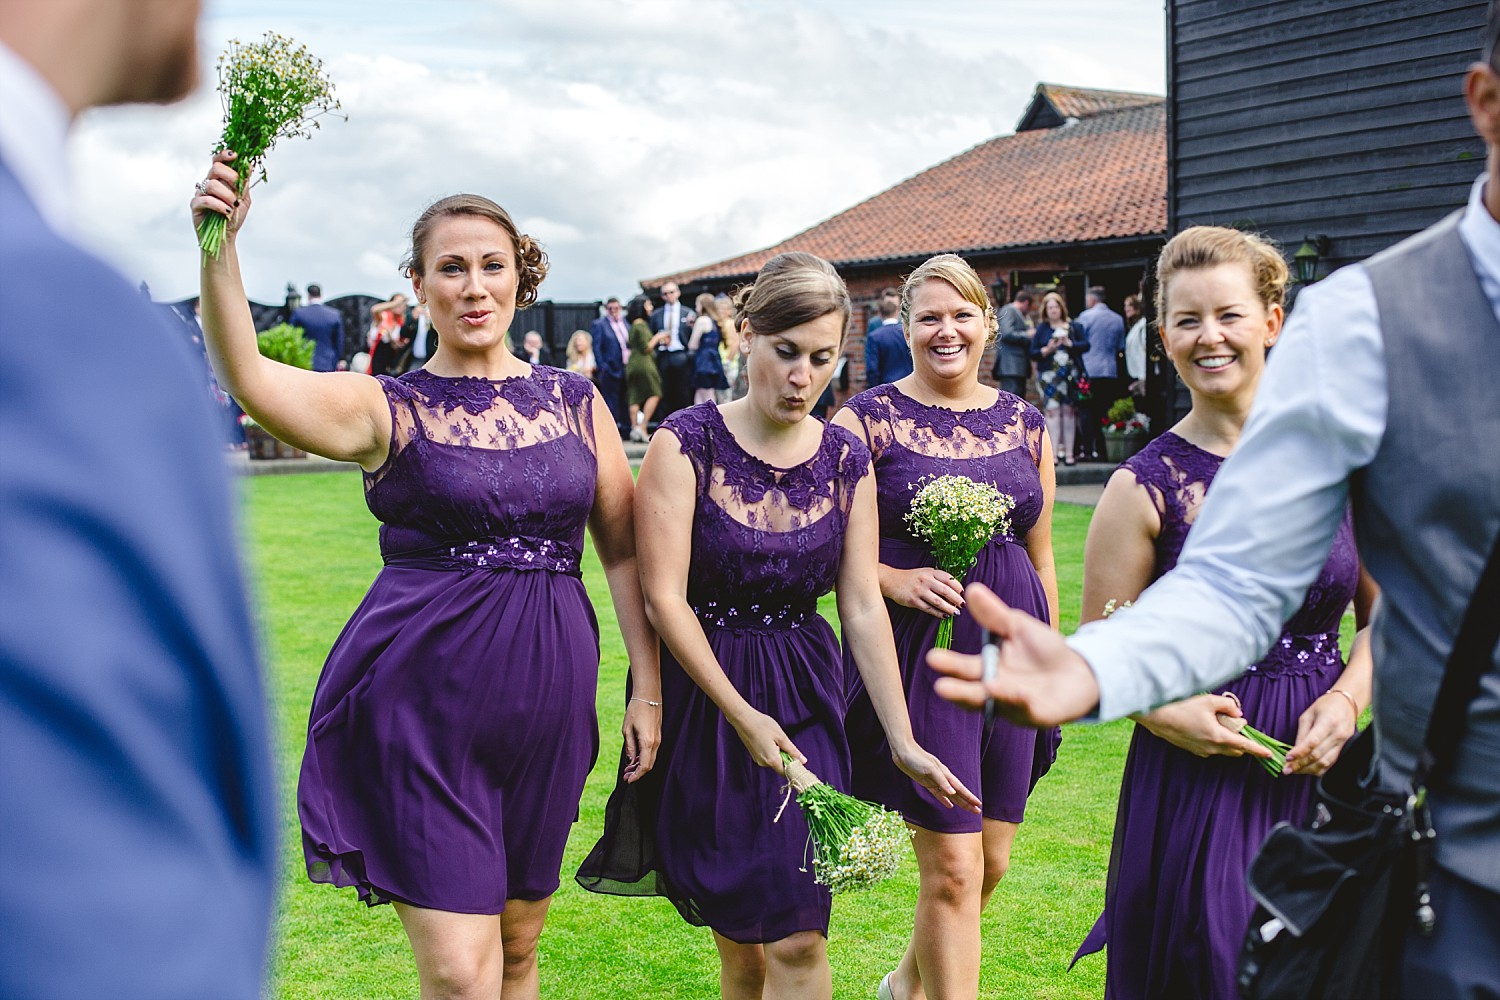 Wedding Photographer Essex - Crondon Park Wedding - Bridesmaids